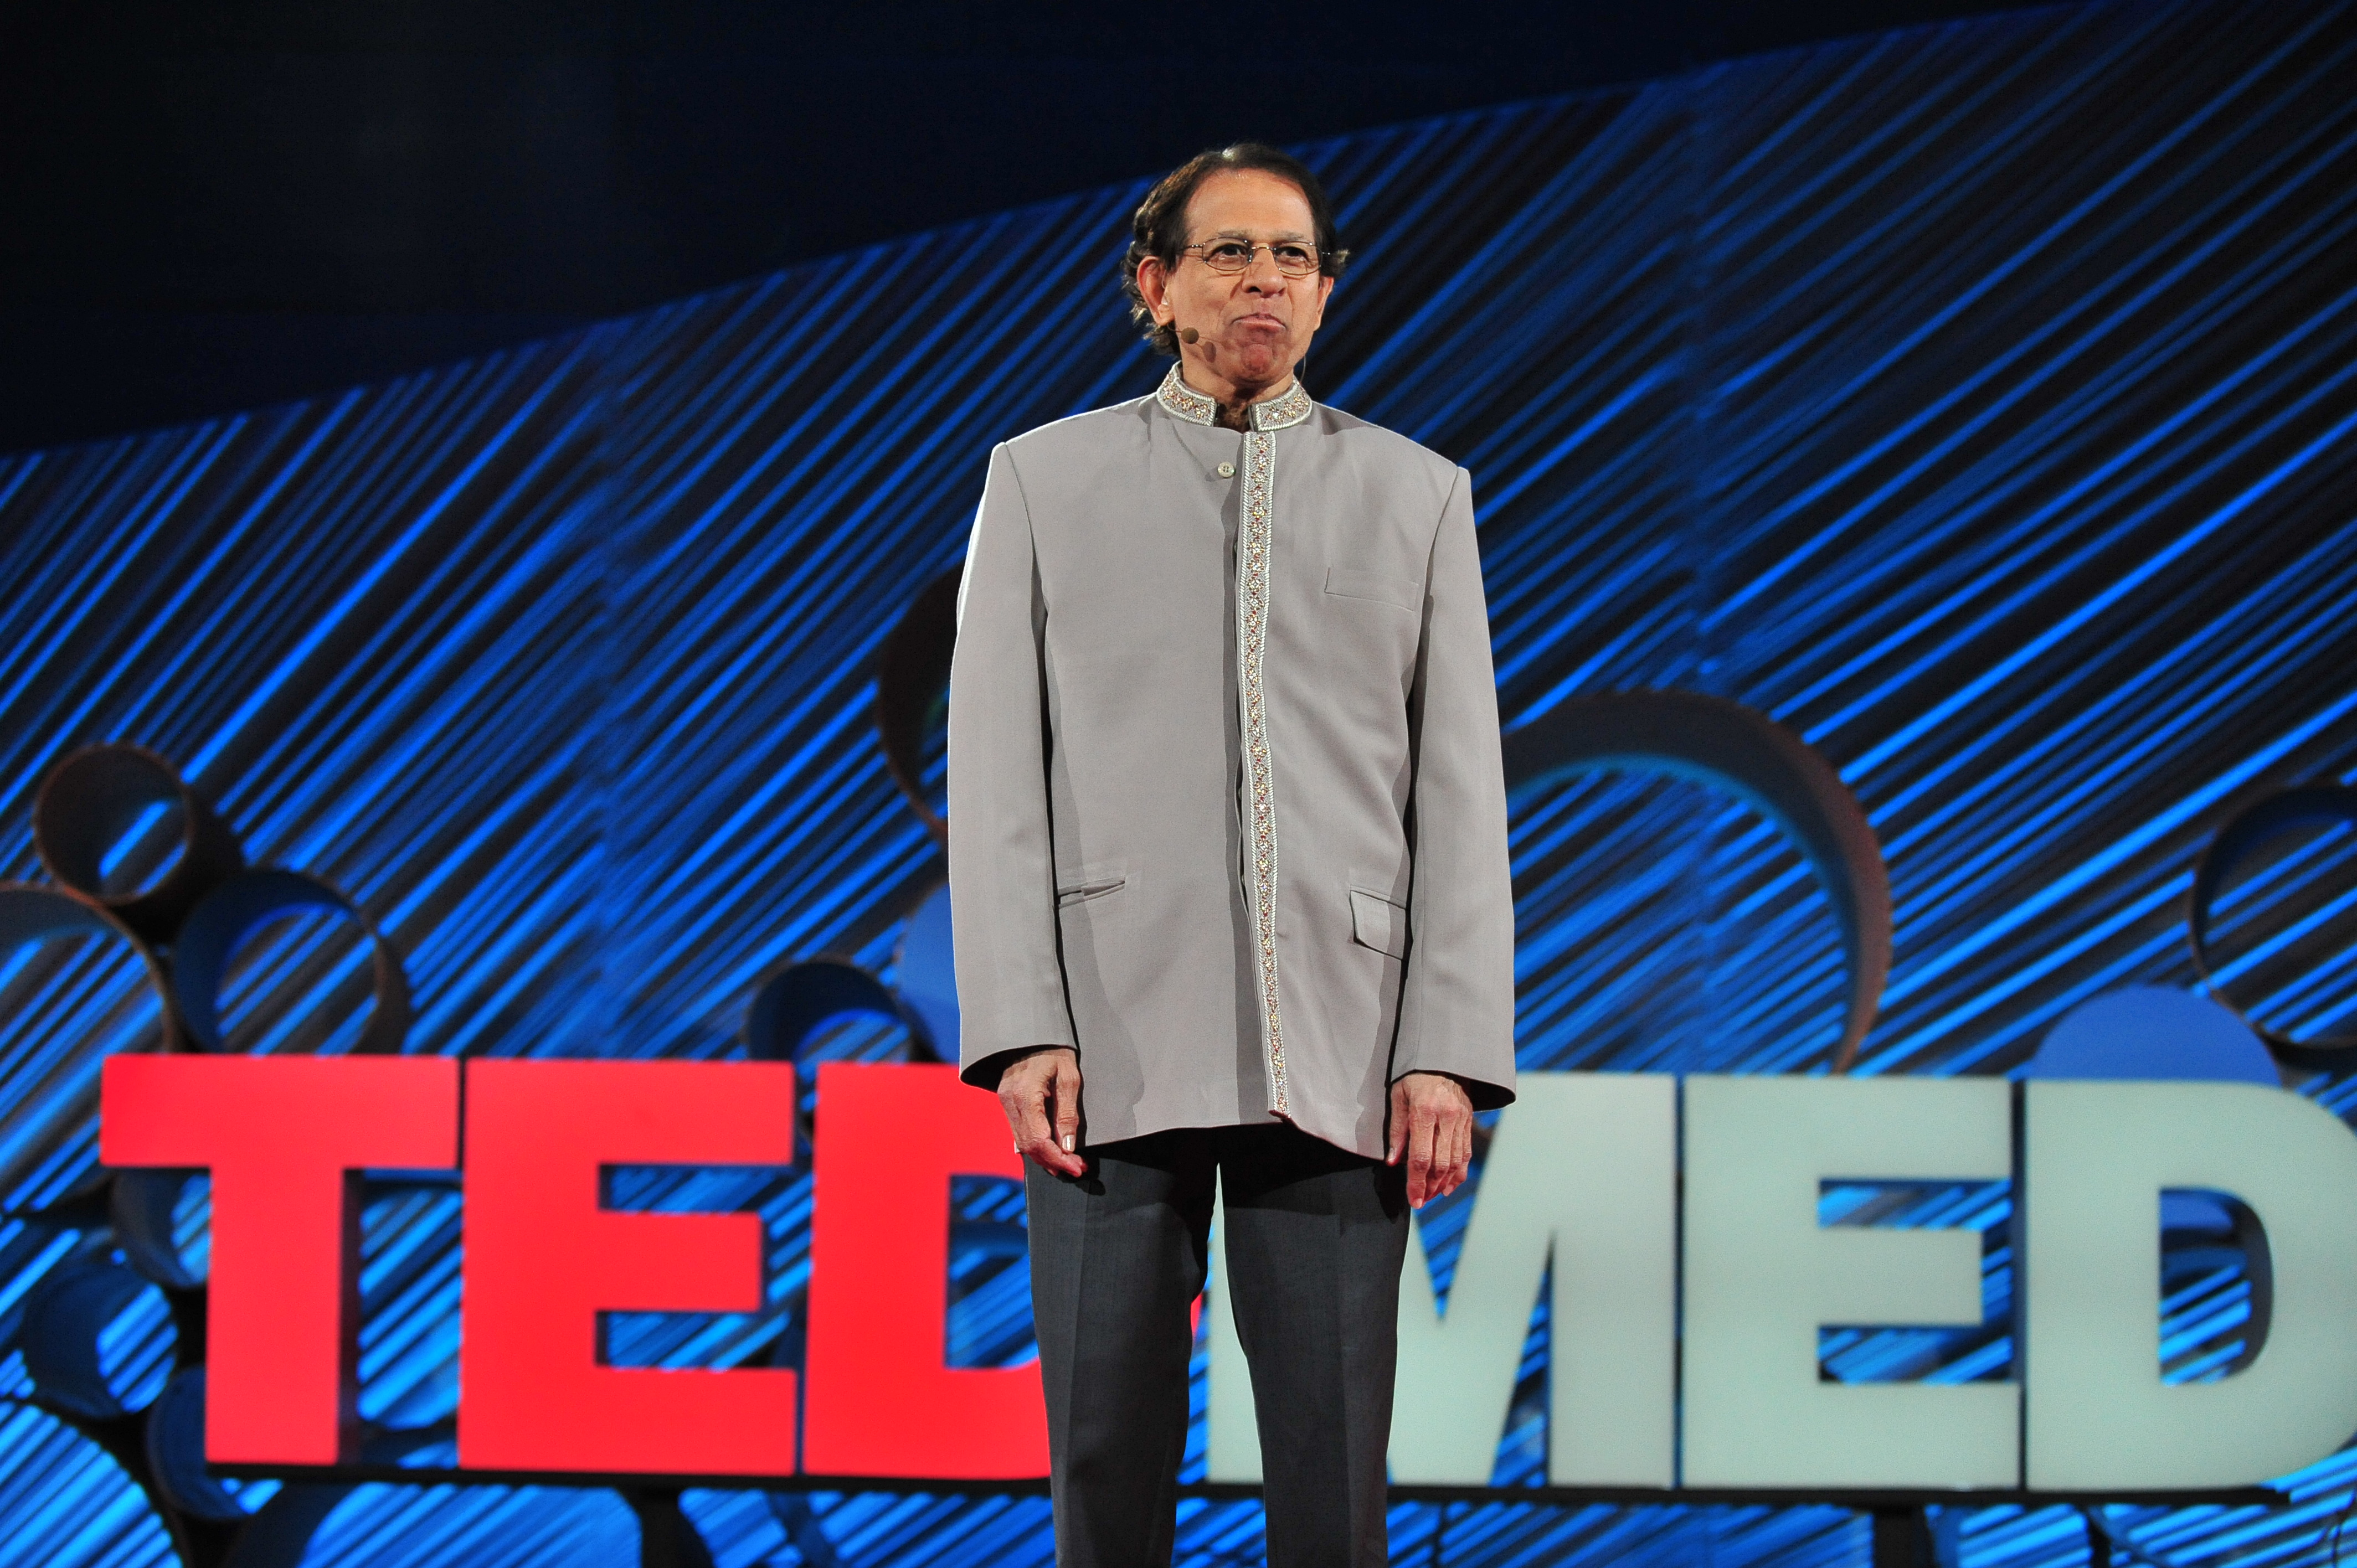 Dilip Jeste, MD on TEDMED Stage - 2